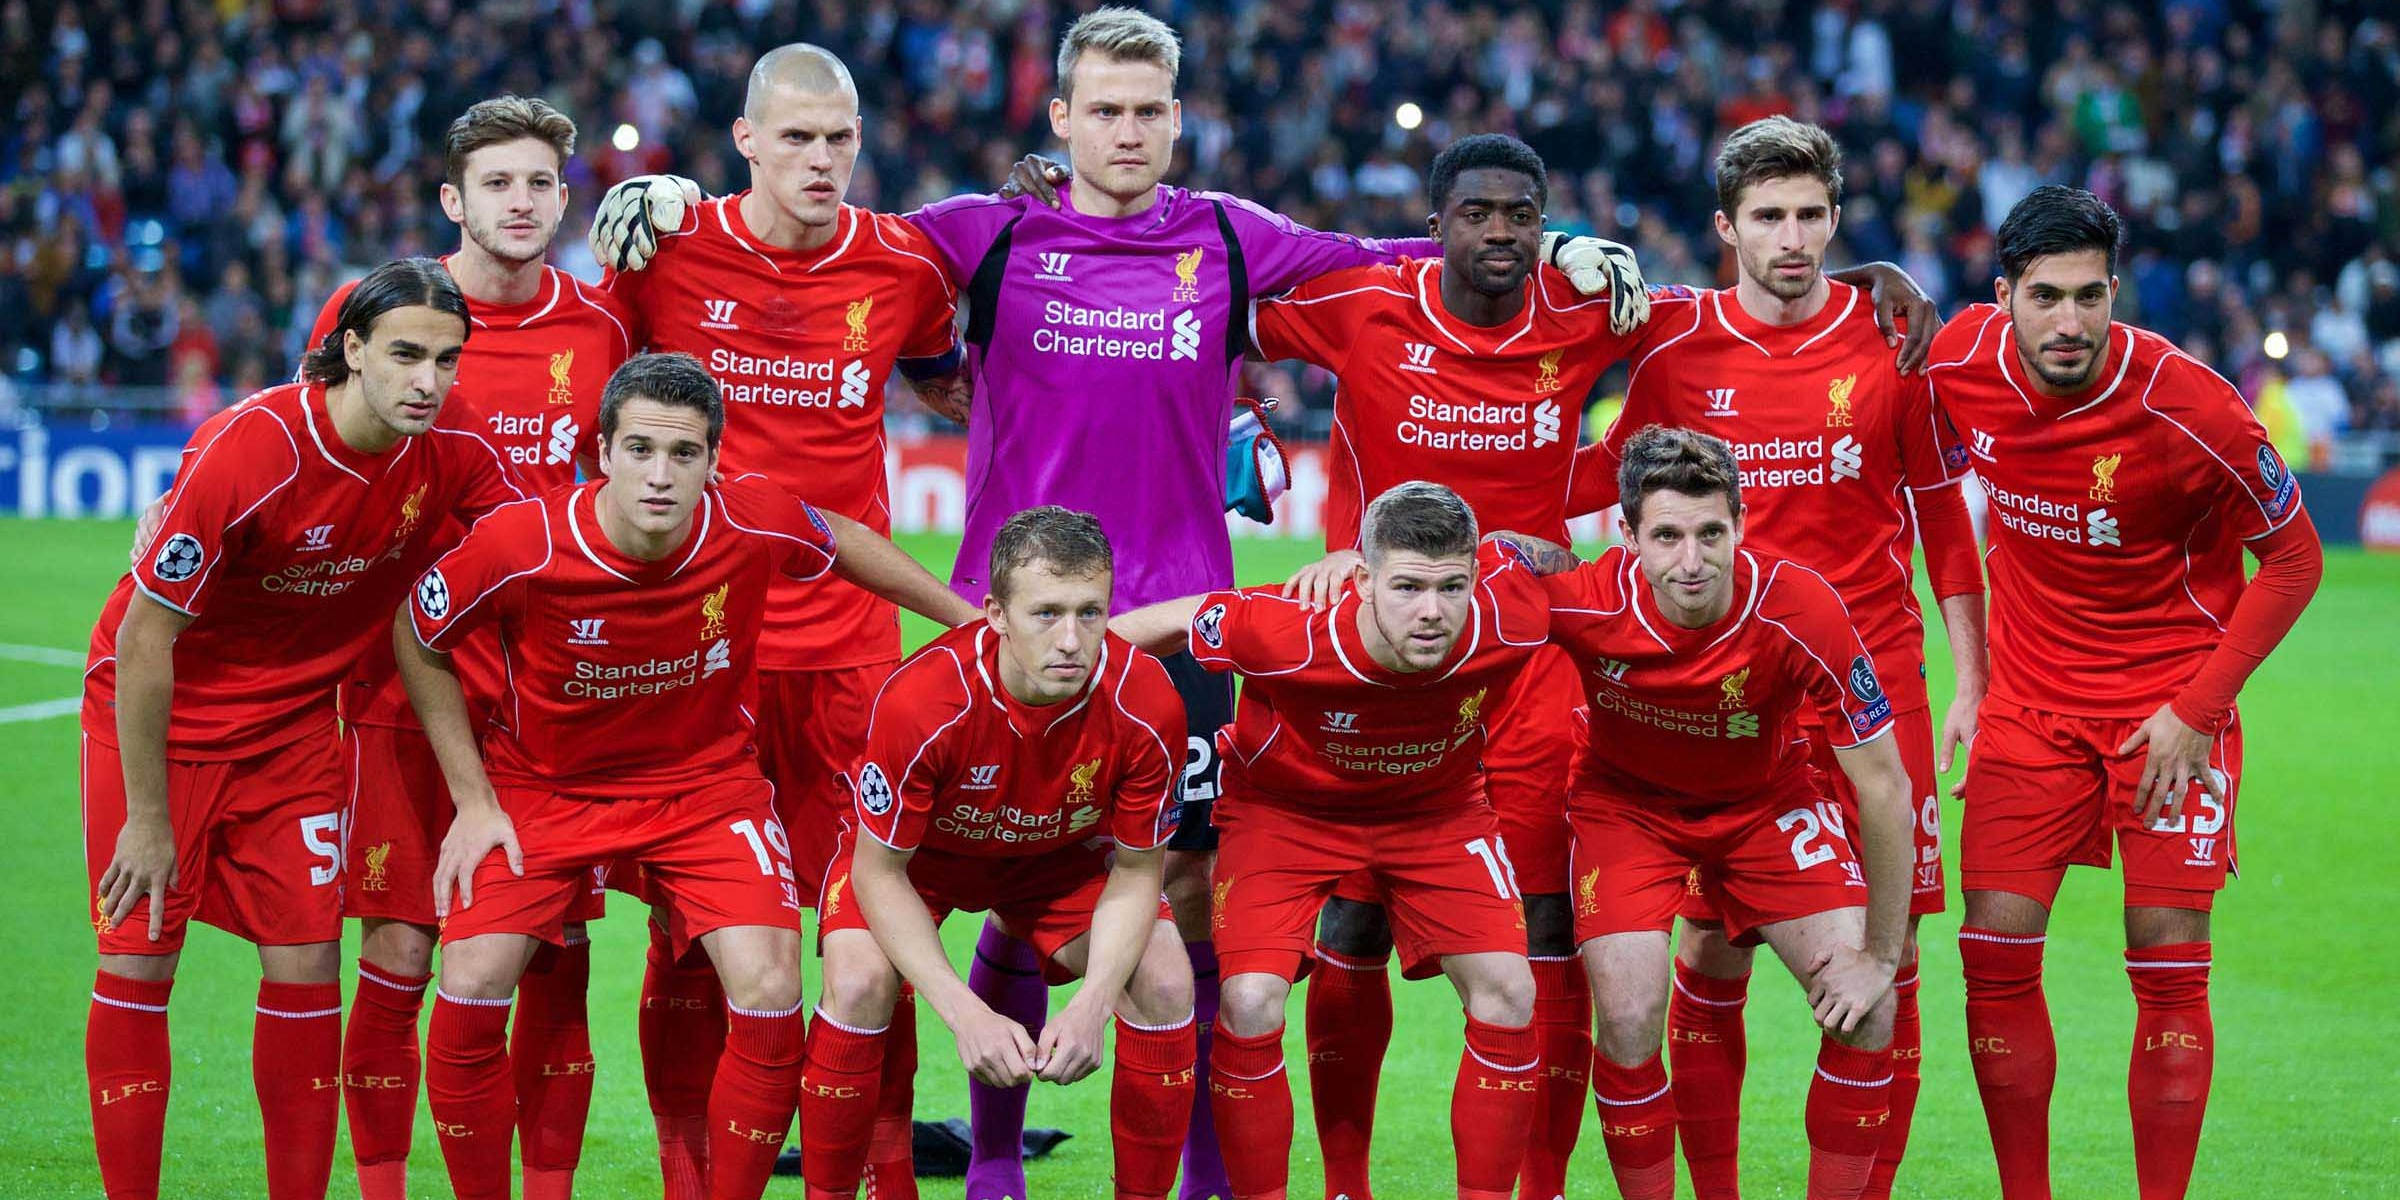 Liverpool XI v. Real Madrid in 2014 – where they are now